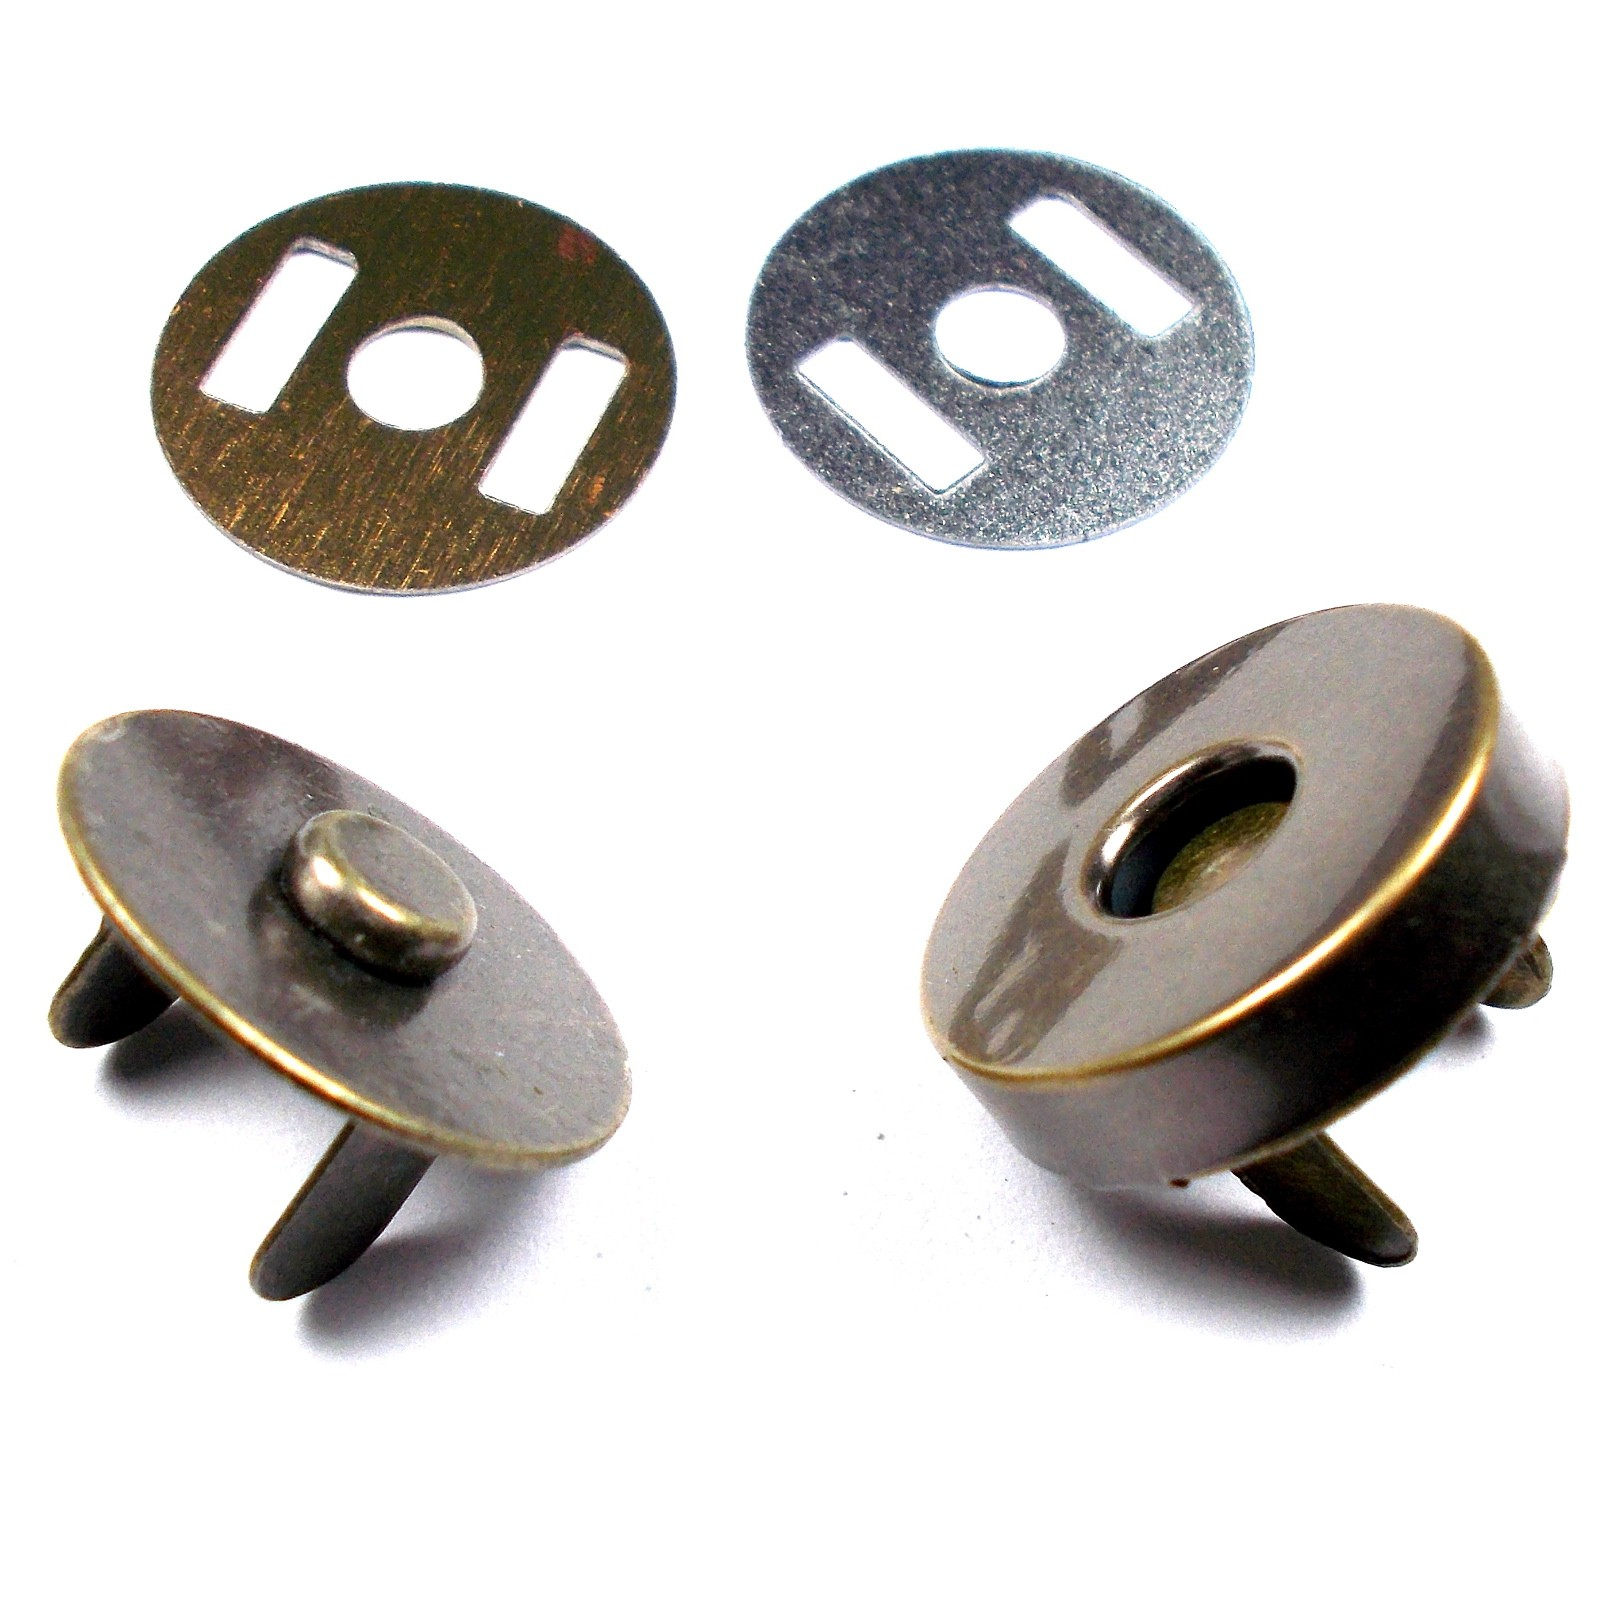 Metal Magnetic Clasps Bag Fasteners 14mm Brass Pack of 6